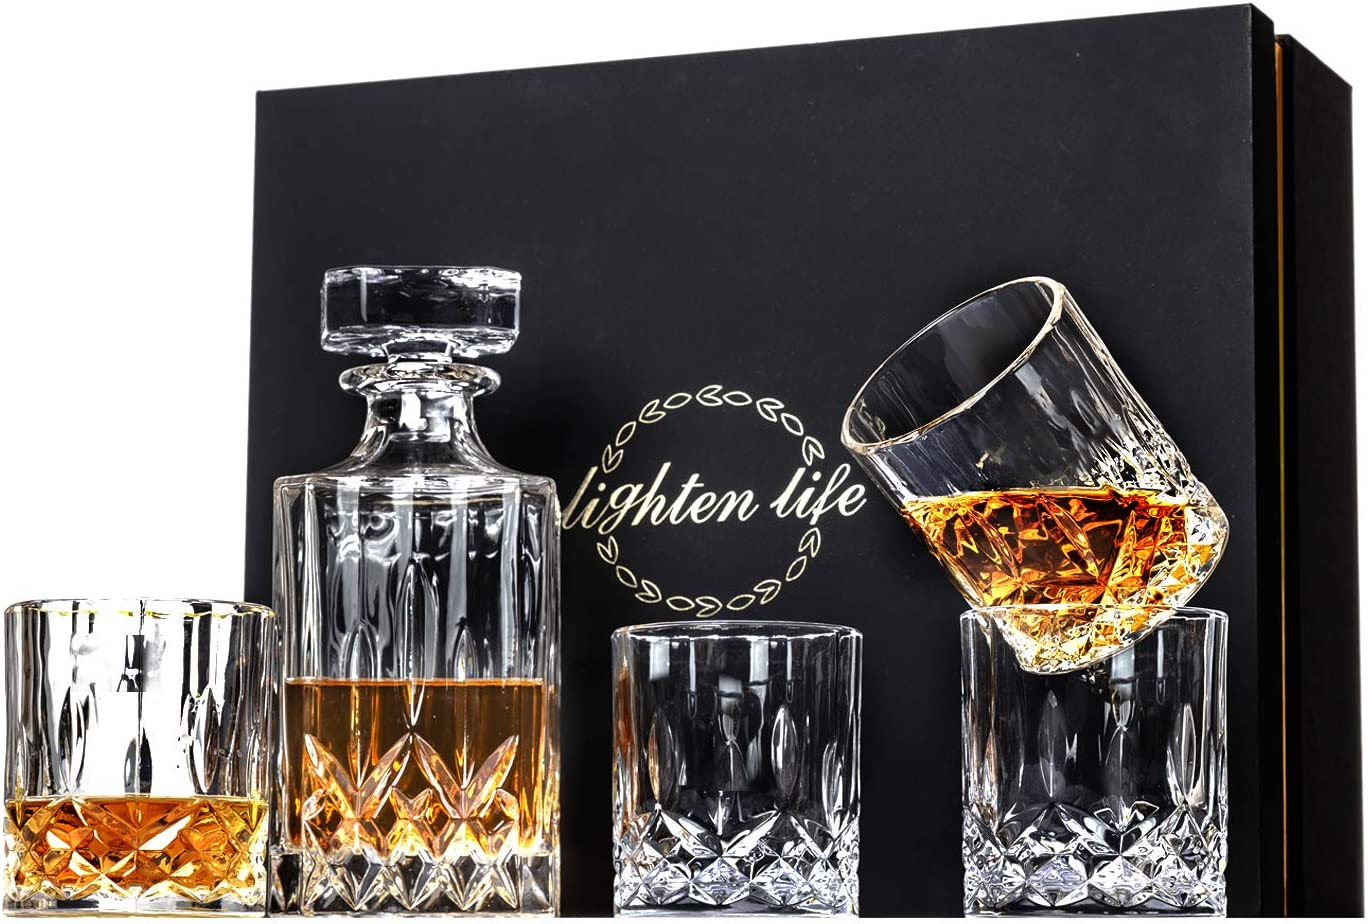 Lighten Life 5-Piece Whiskey Decanter Sets,Crystal Whiskey Decanter with 4 Glass in Unique Box,Bourbon Decanter and Whiskey Glass,Whiskey Glass Decanter Set for Men,Christmas,Birthday,Anniversary